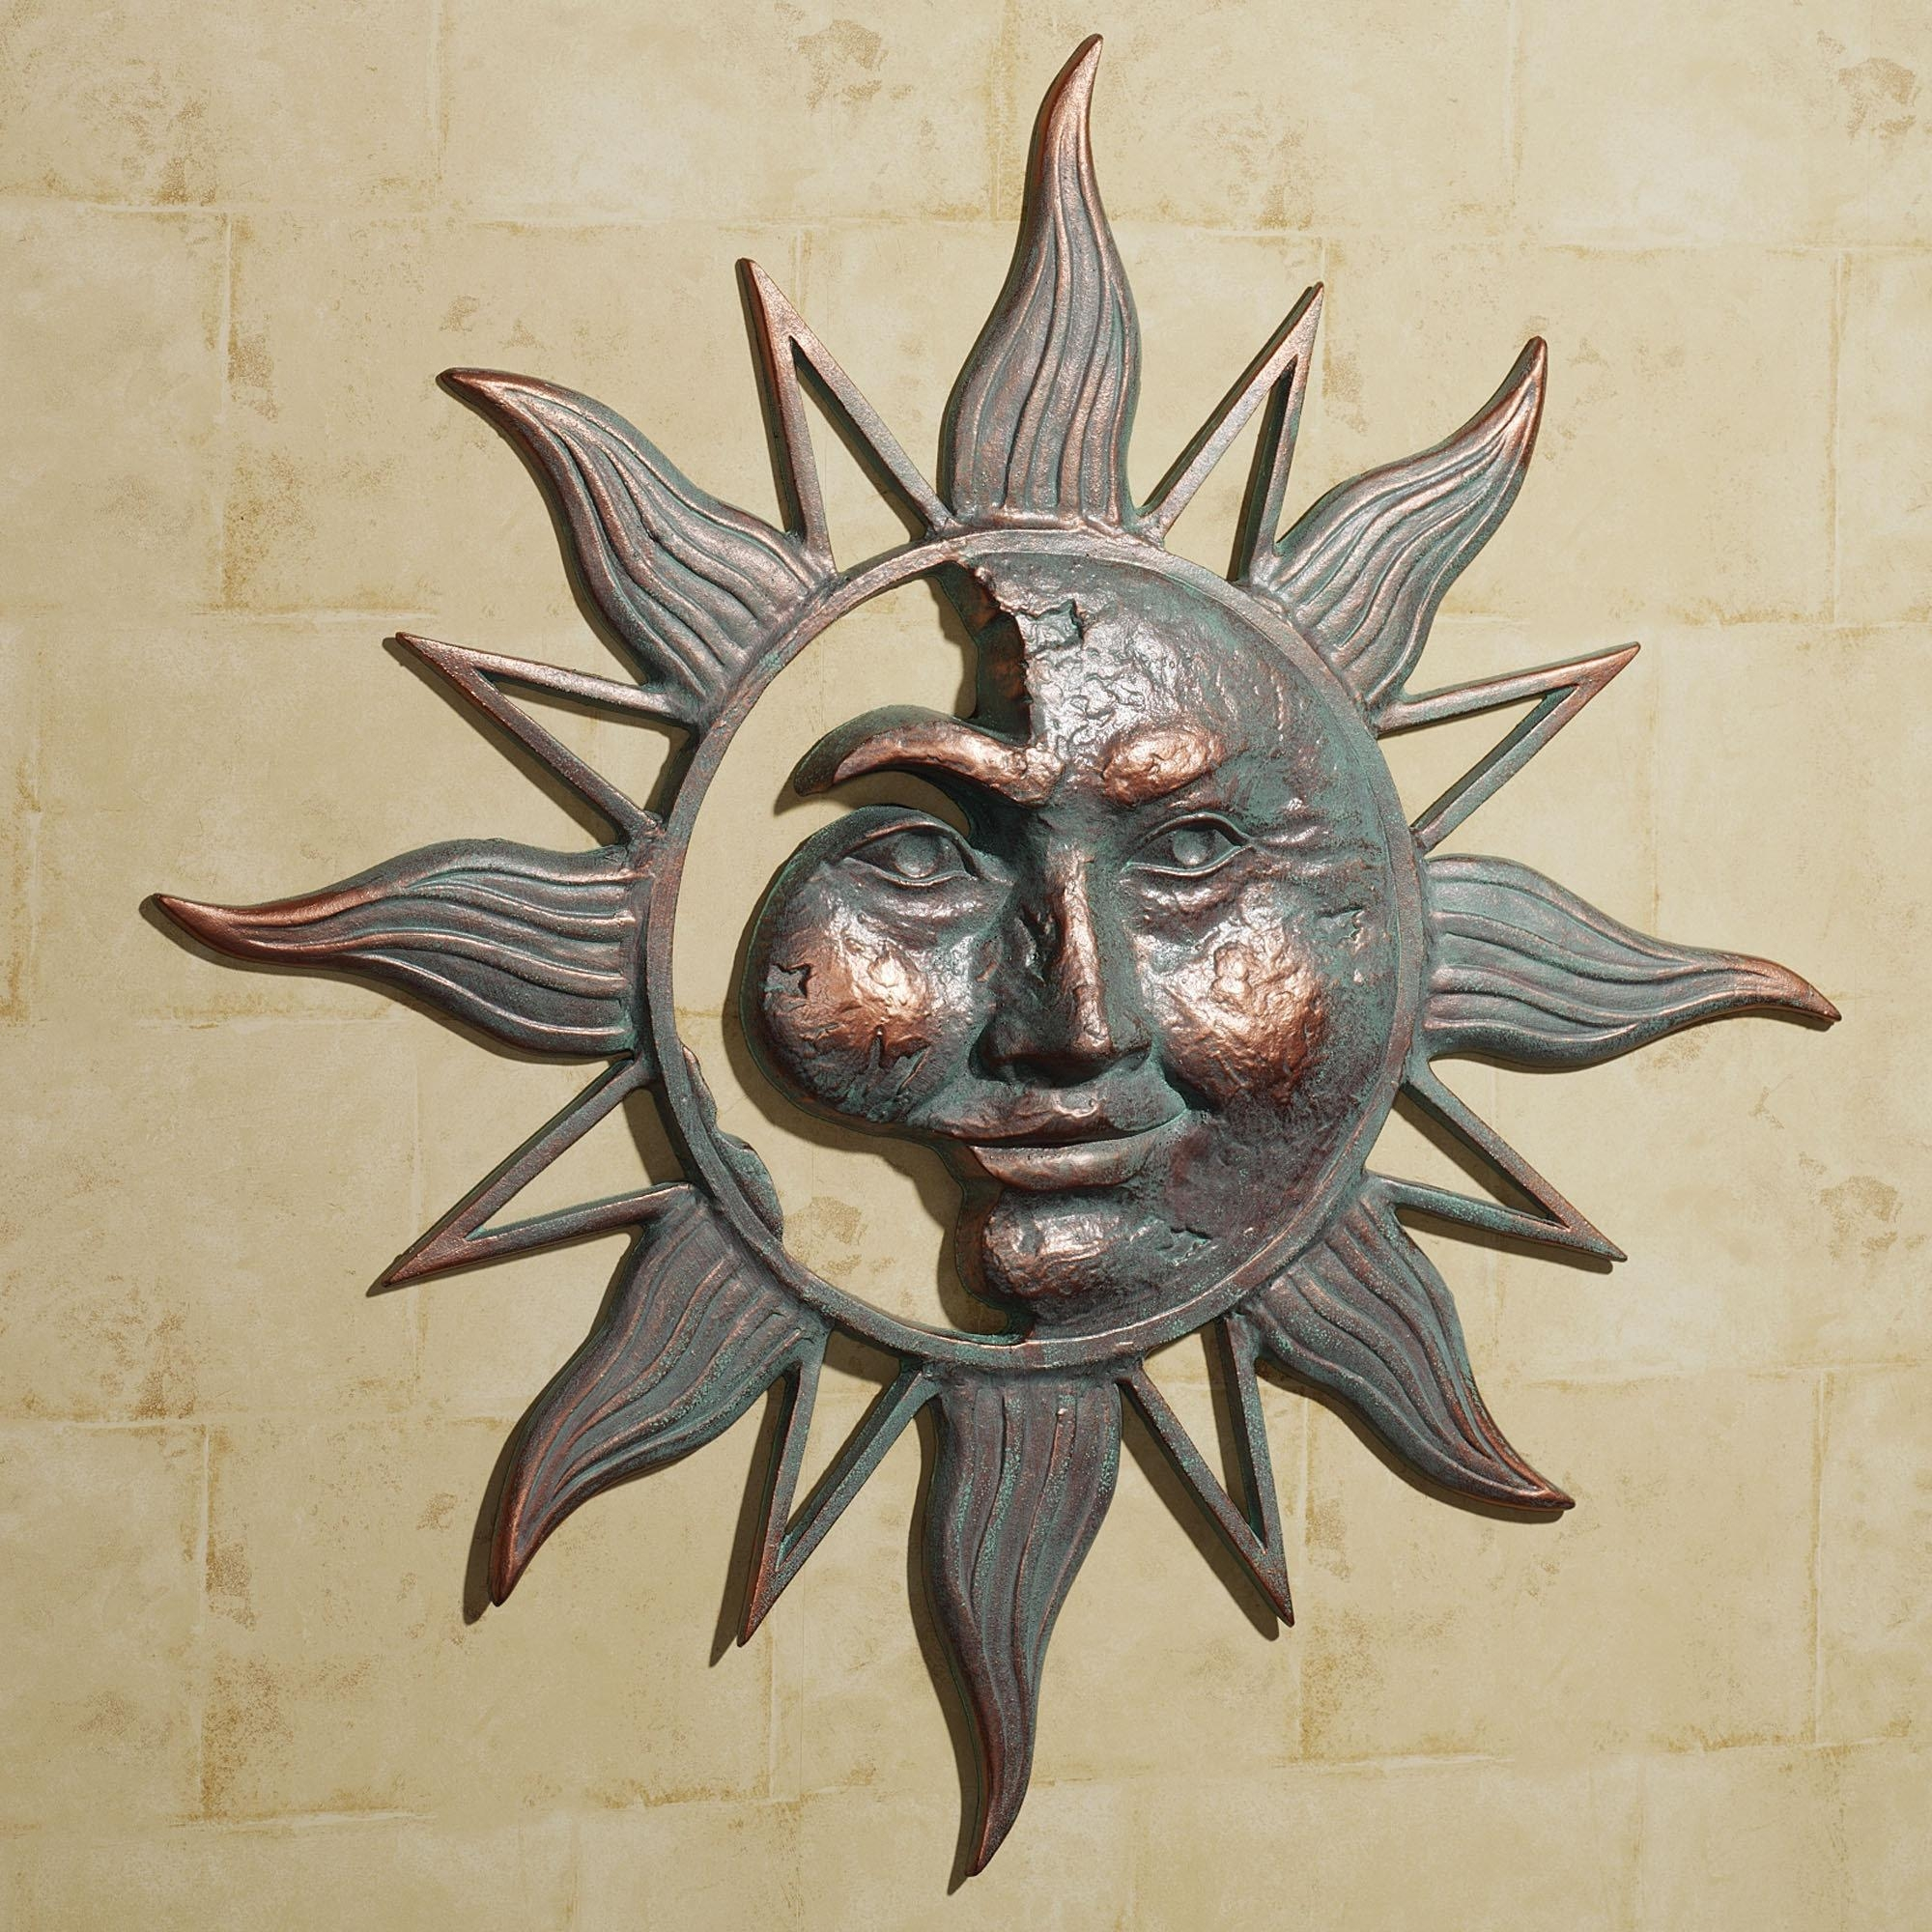 Wall Art Design Ideas: Awesome Sun Face Wall Art Costco, Sun Wall Throughout Costco Wall Art (View 11 of 20)